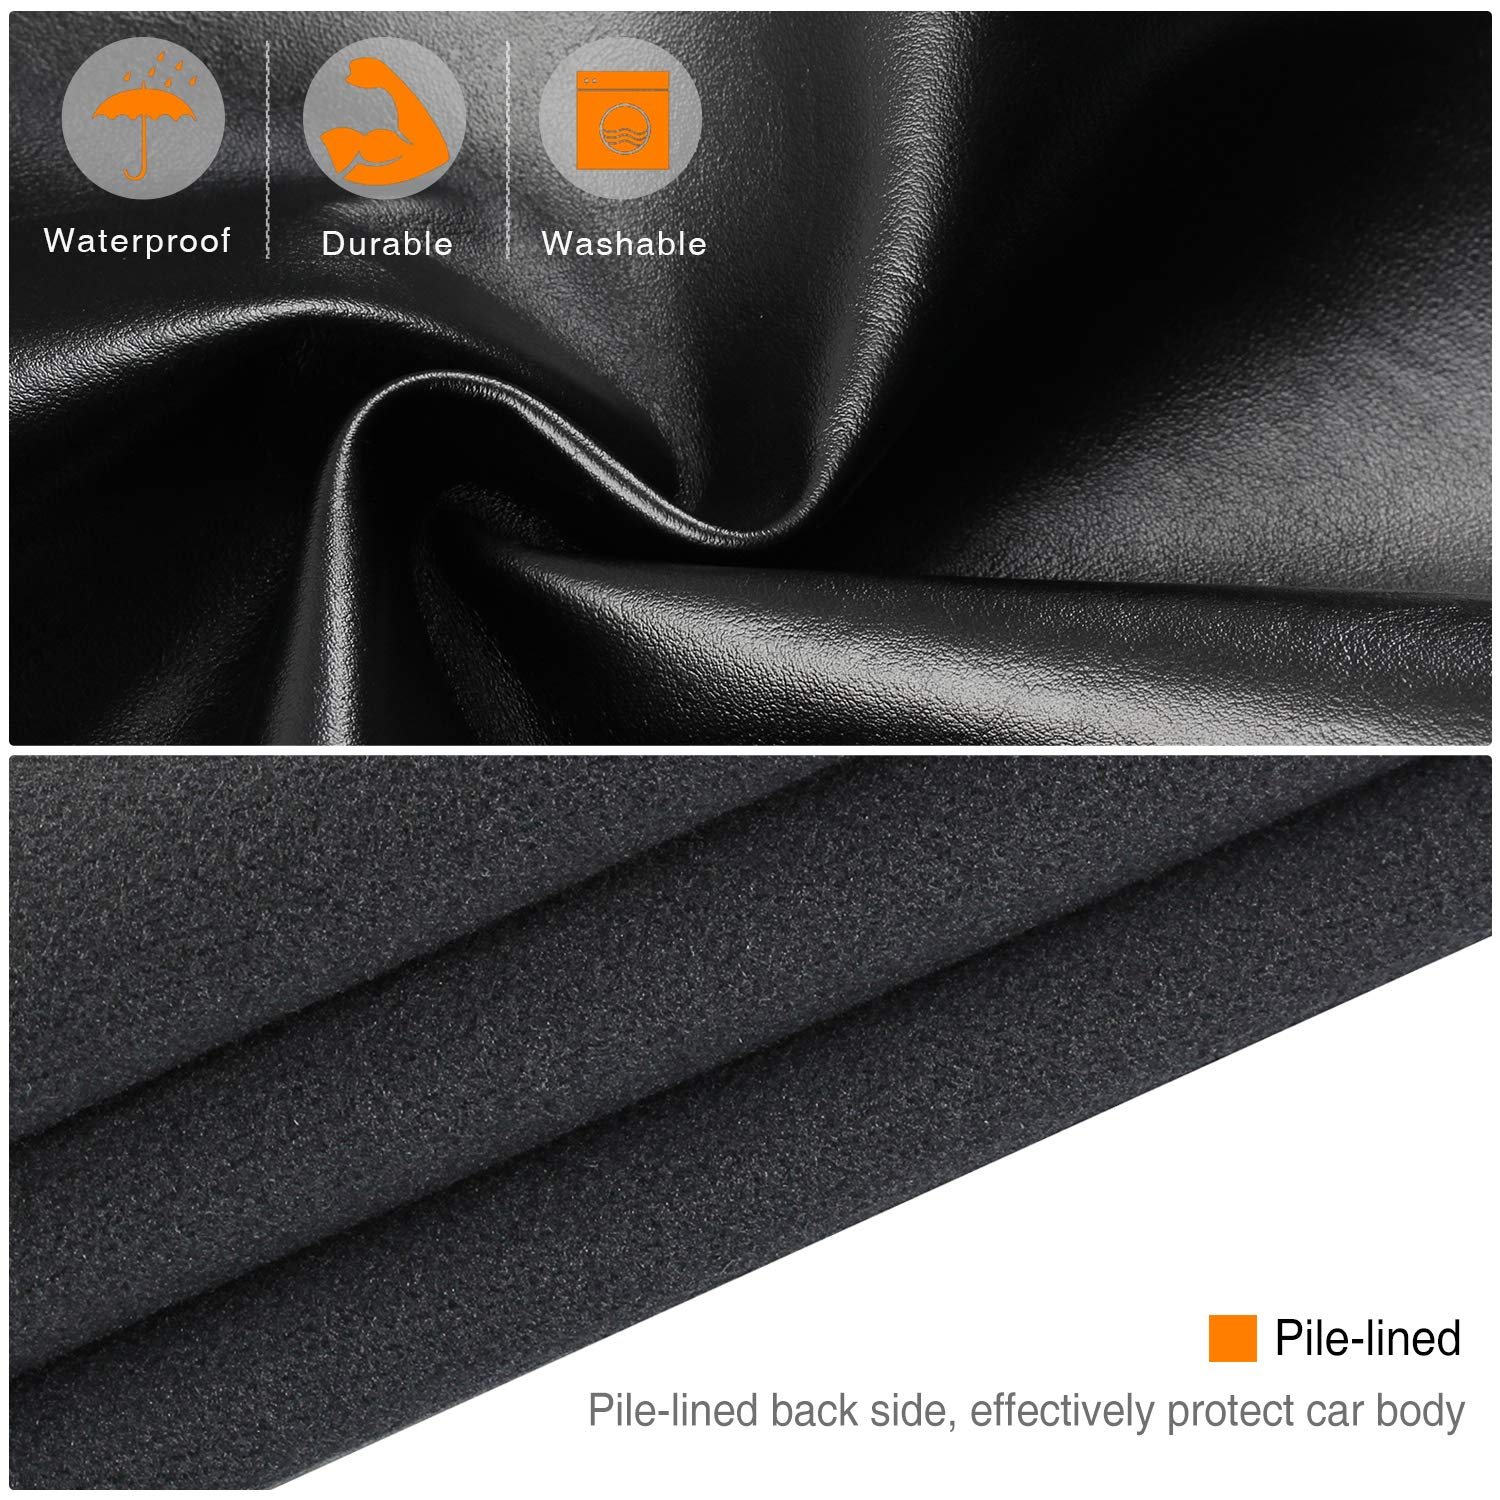 RUPSE Automotive Mechanic Magnetic Fender Cover Mat Pad Protective Mat for Repair Automotive Work Seat Cover Protector